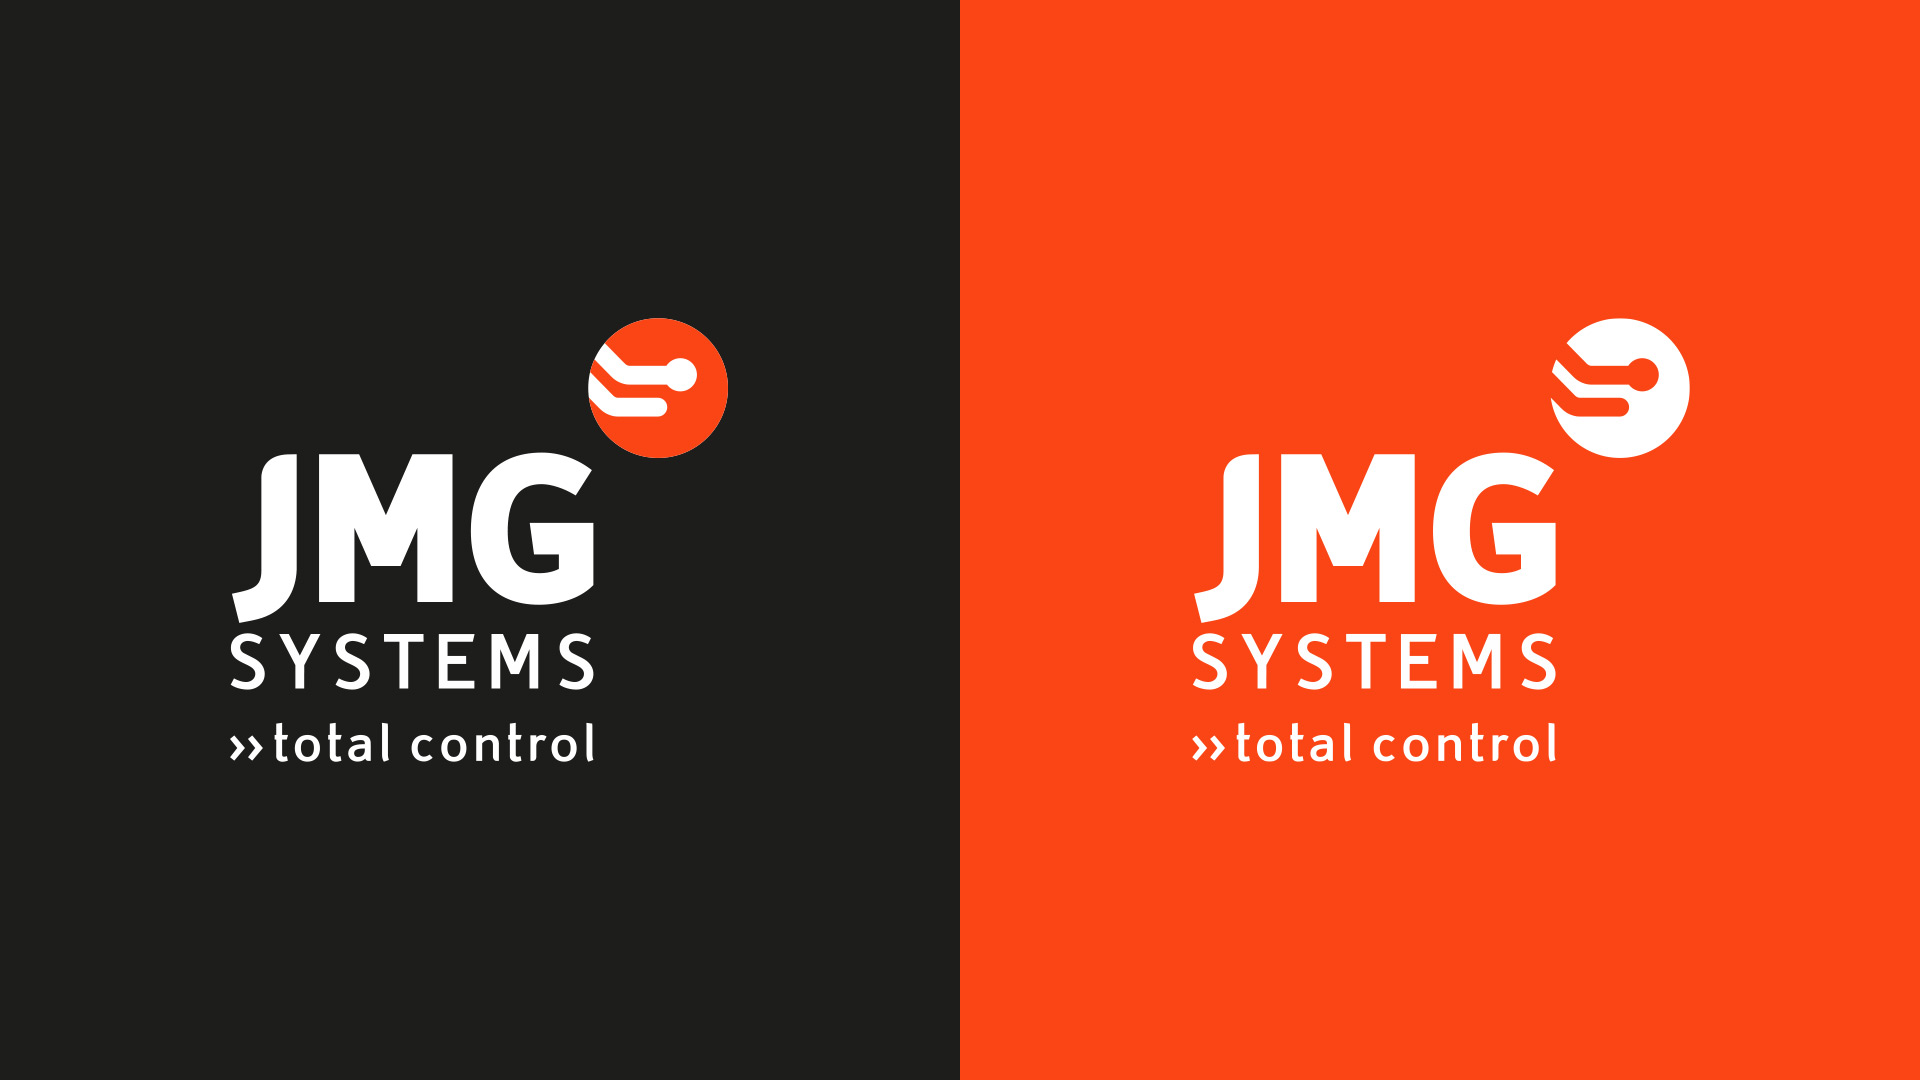 JMG alternative Logos